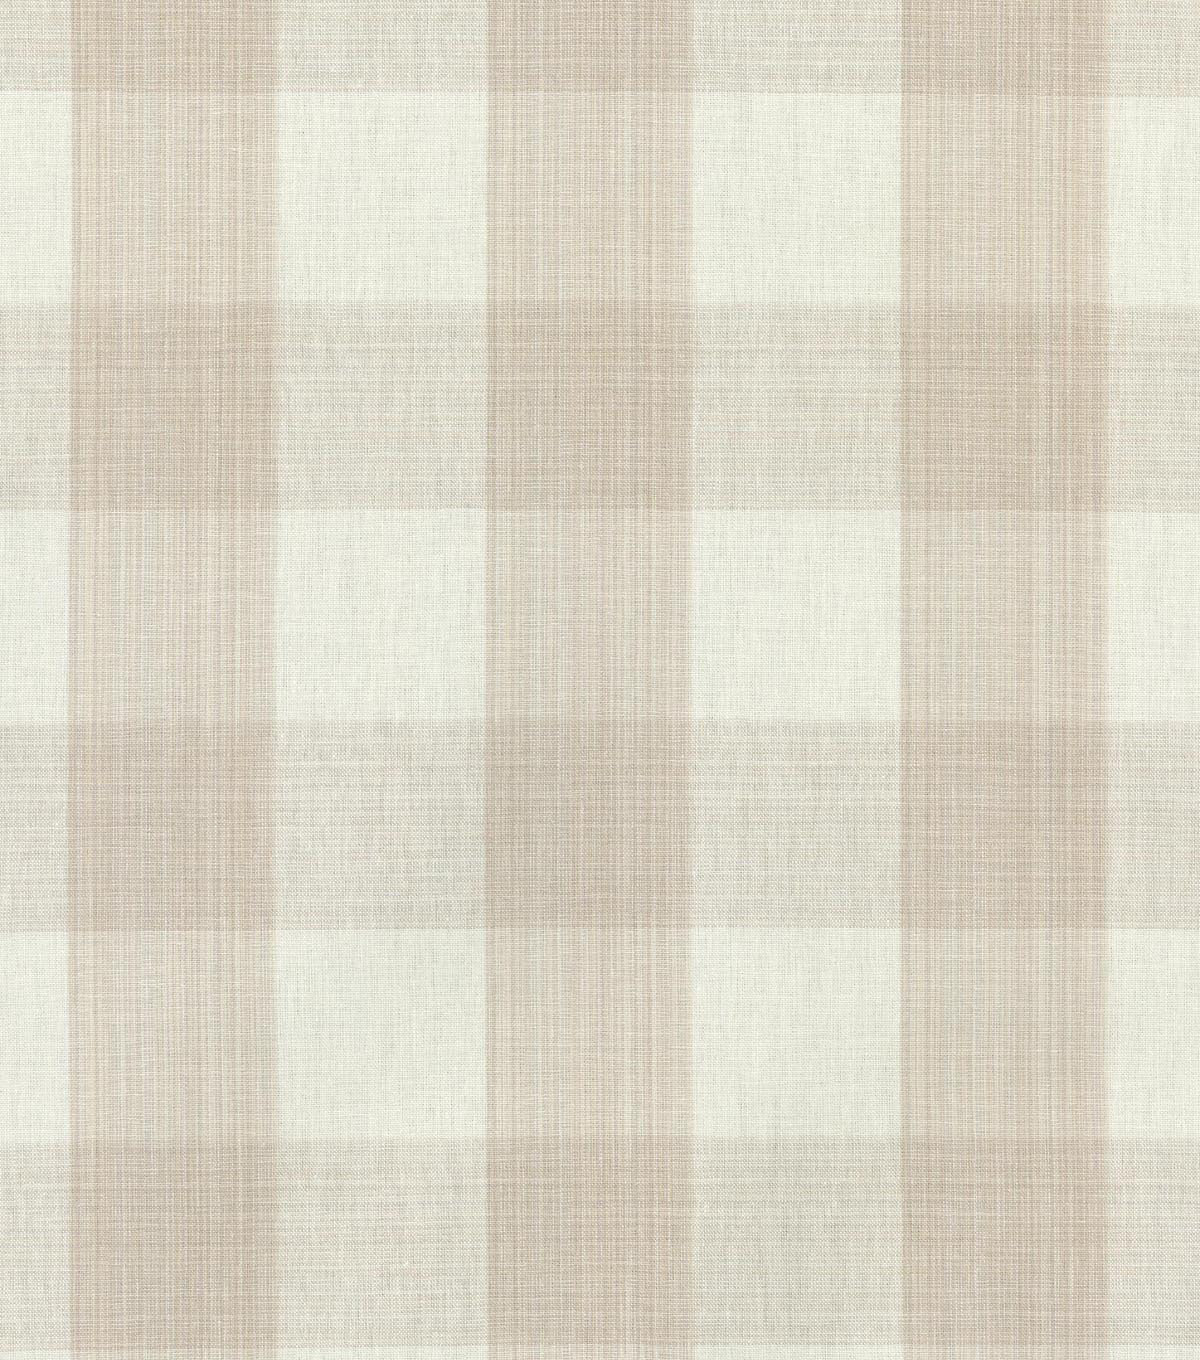 Home Decor 8\u0022x8\u0022 Swatch Fabric-Williamsburg Stratford Check Linen